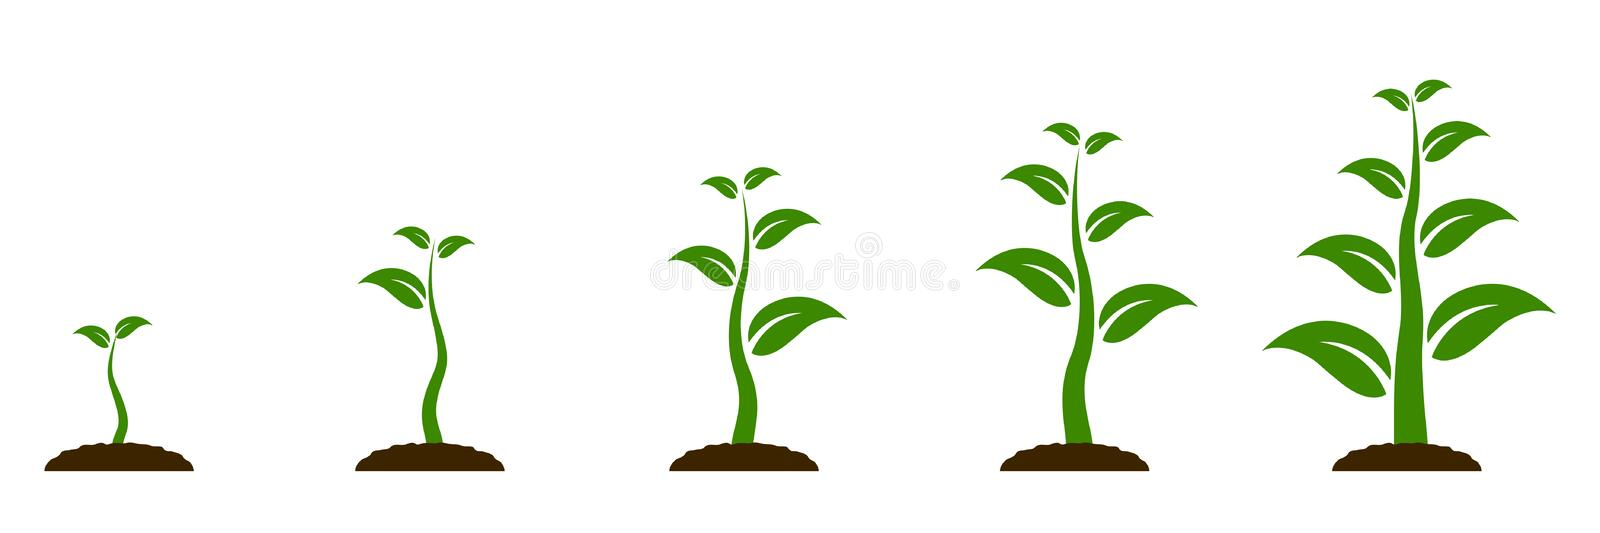 Evolution concept. Phases plant growing. Seeds sprout in ground. Planting tree infographic. Sprout, plant, tree growing vector illustration